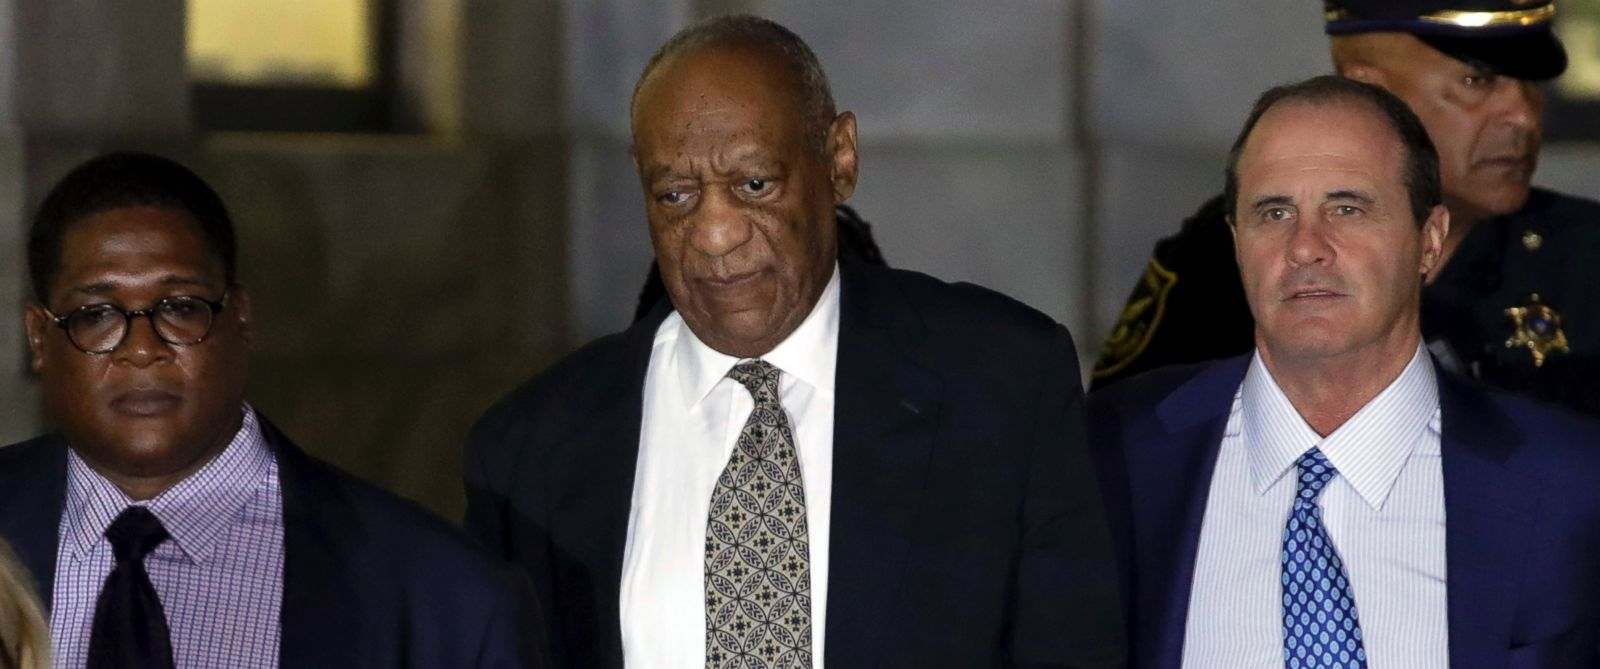 PHOTO: Bill Cosby leaves the Montgomery County Courthouse during his sexual assault trial, June 15, 2017, in Norristown, Pa.